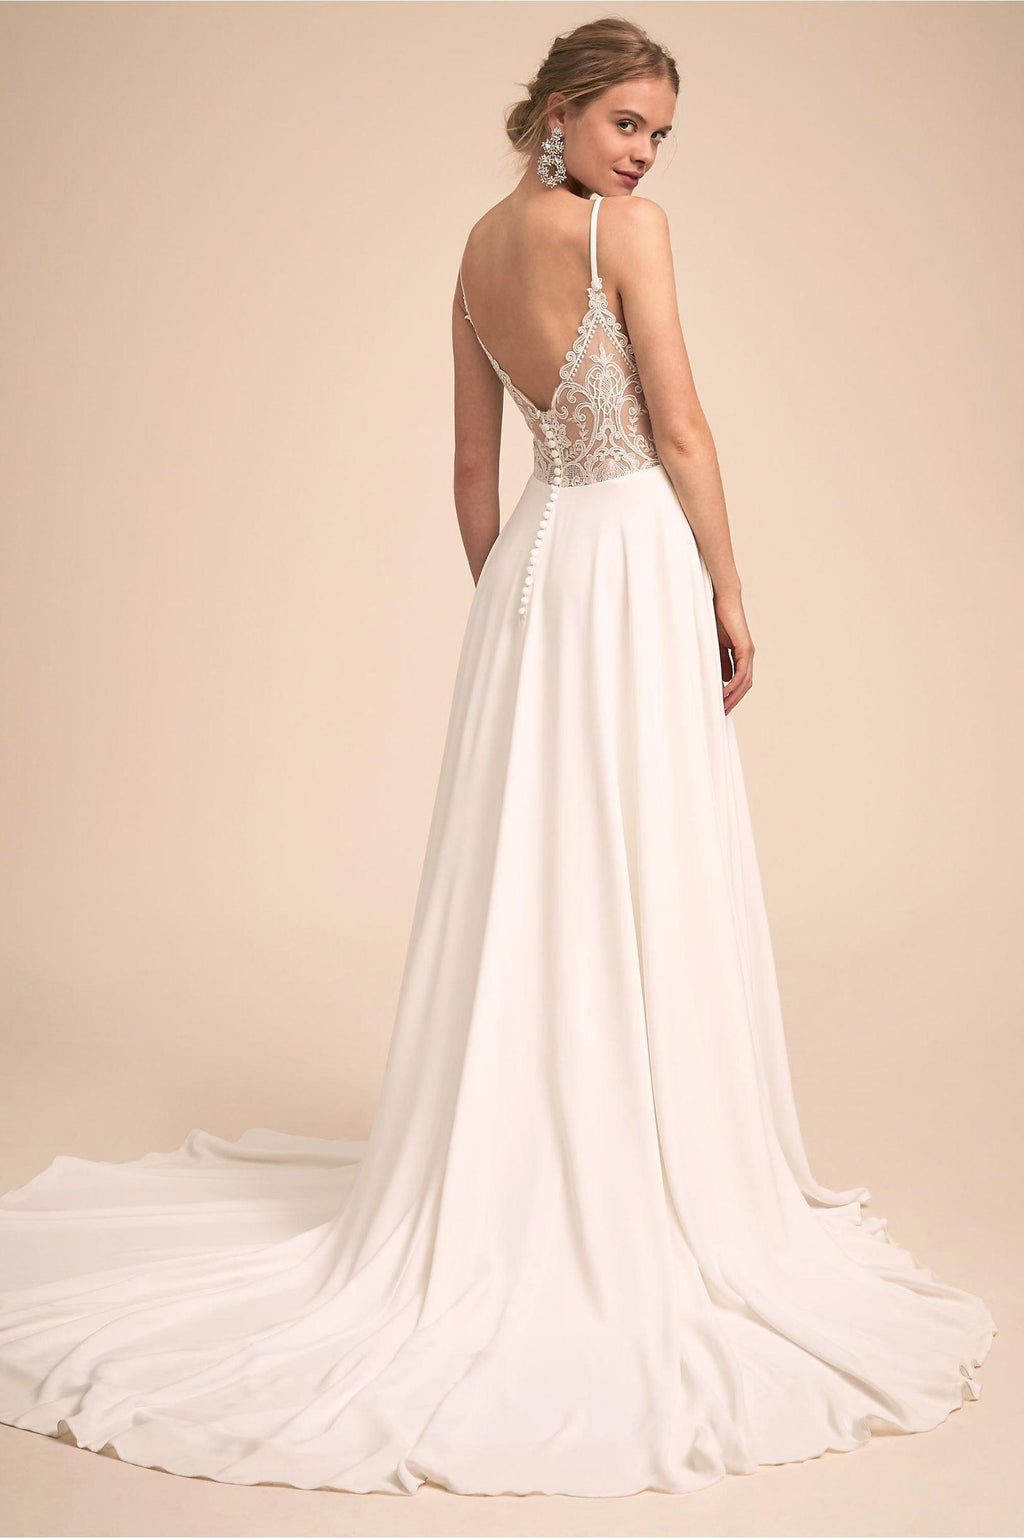 Charming Spaghetti Strap Satin Wedding Dress with Laced Open-Back - Mr. & Mrs. Tomorrow